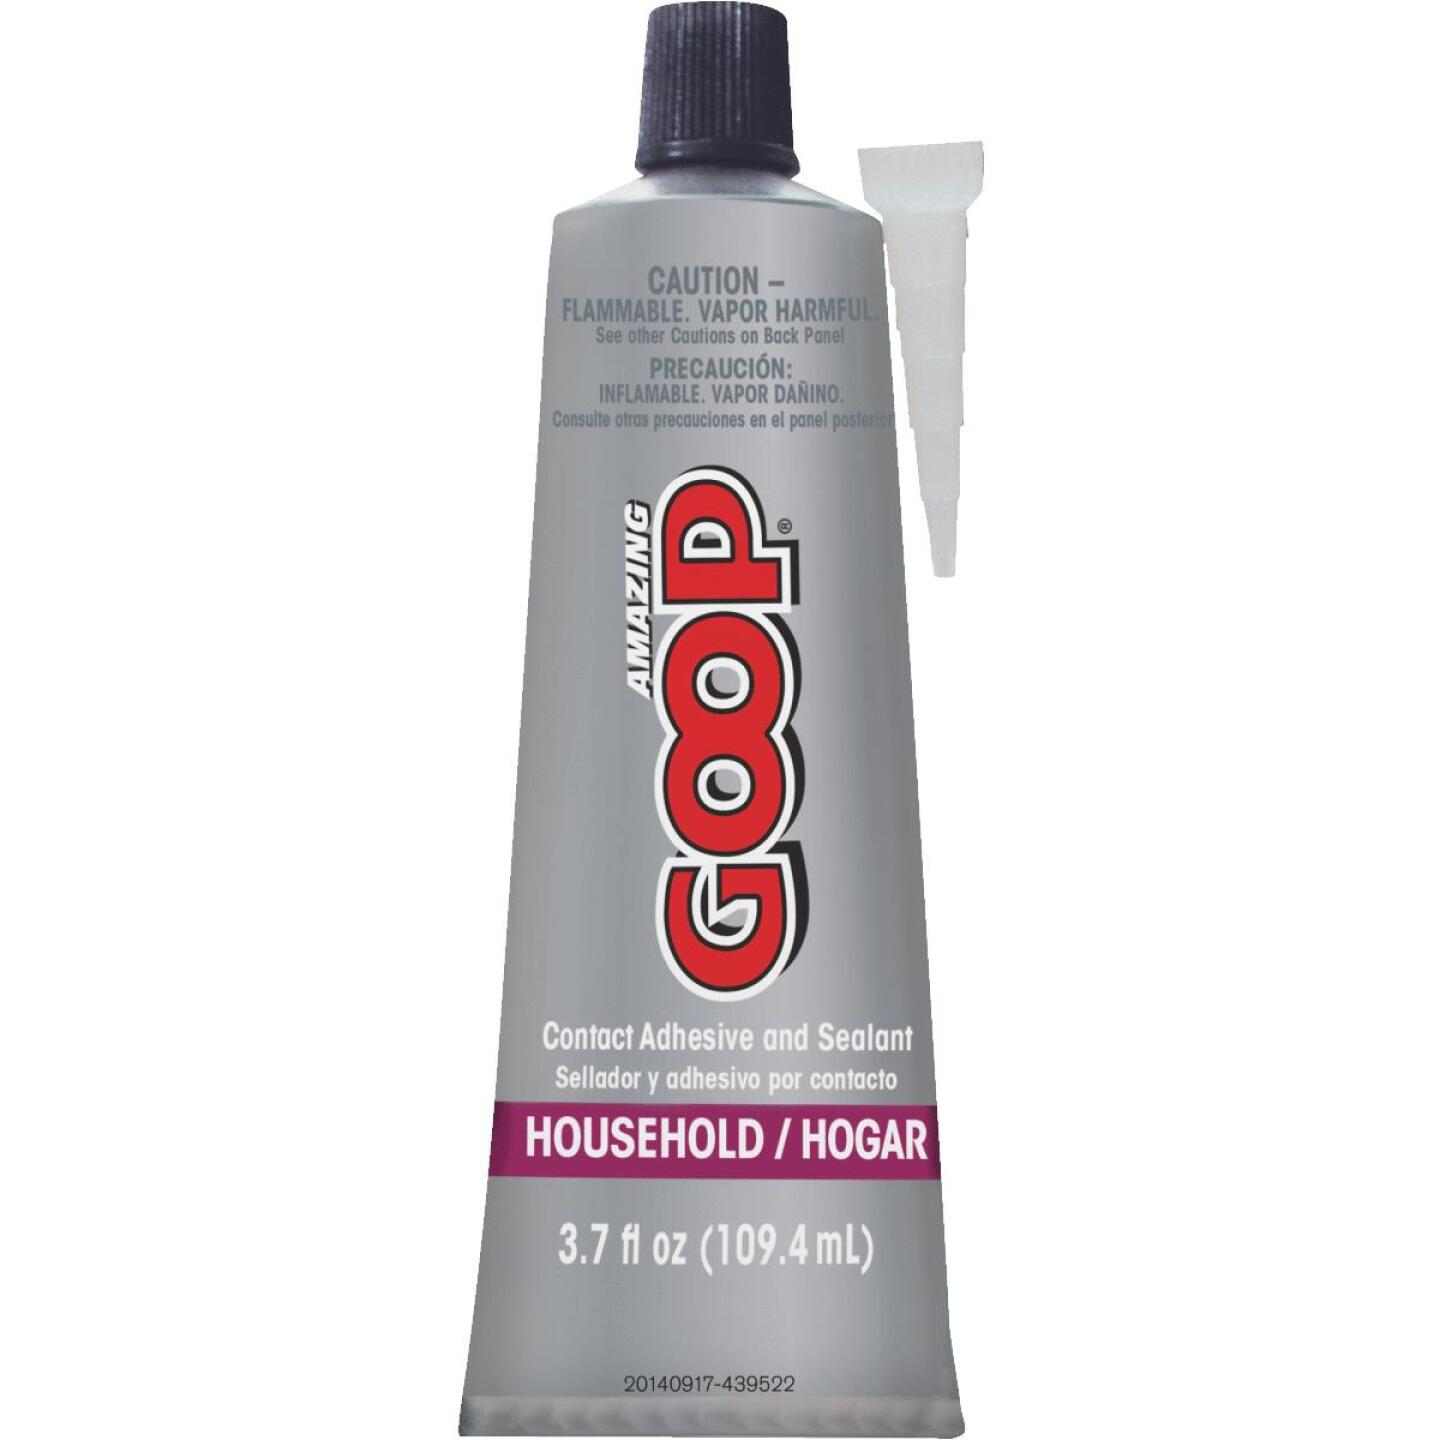 Amazing Goop 3.7 Oz. Household Adhesive Image 1